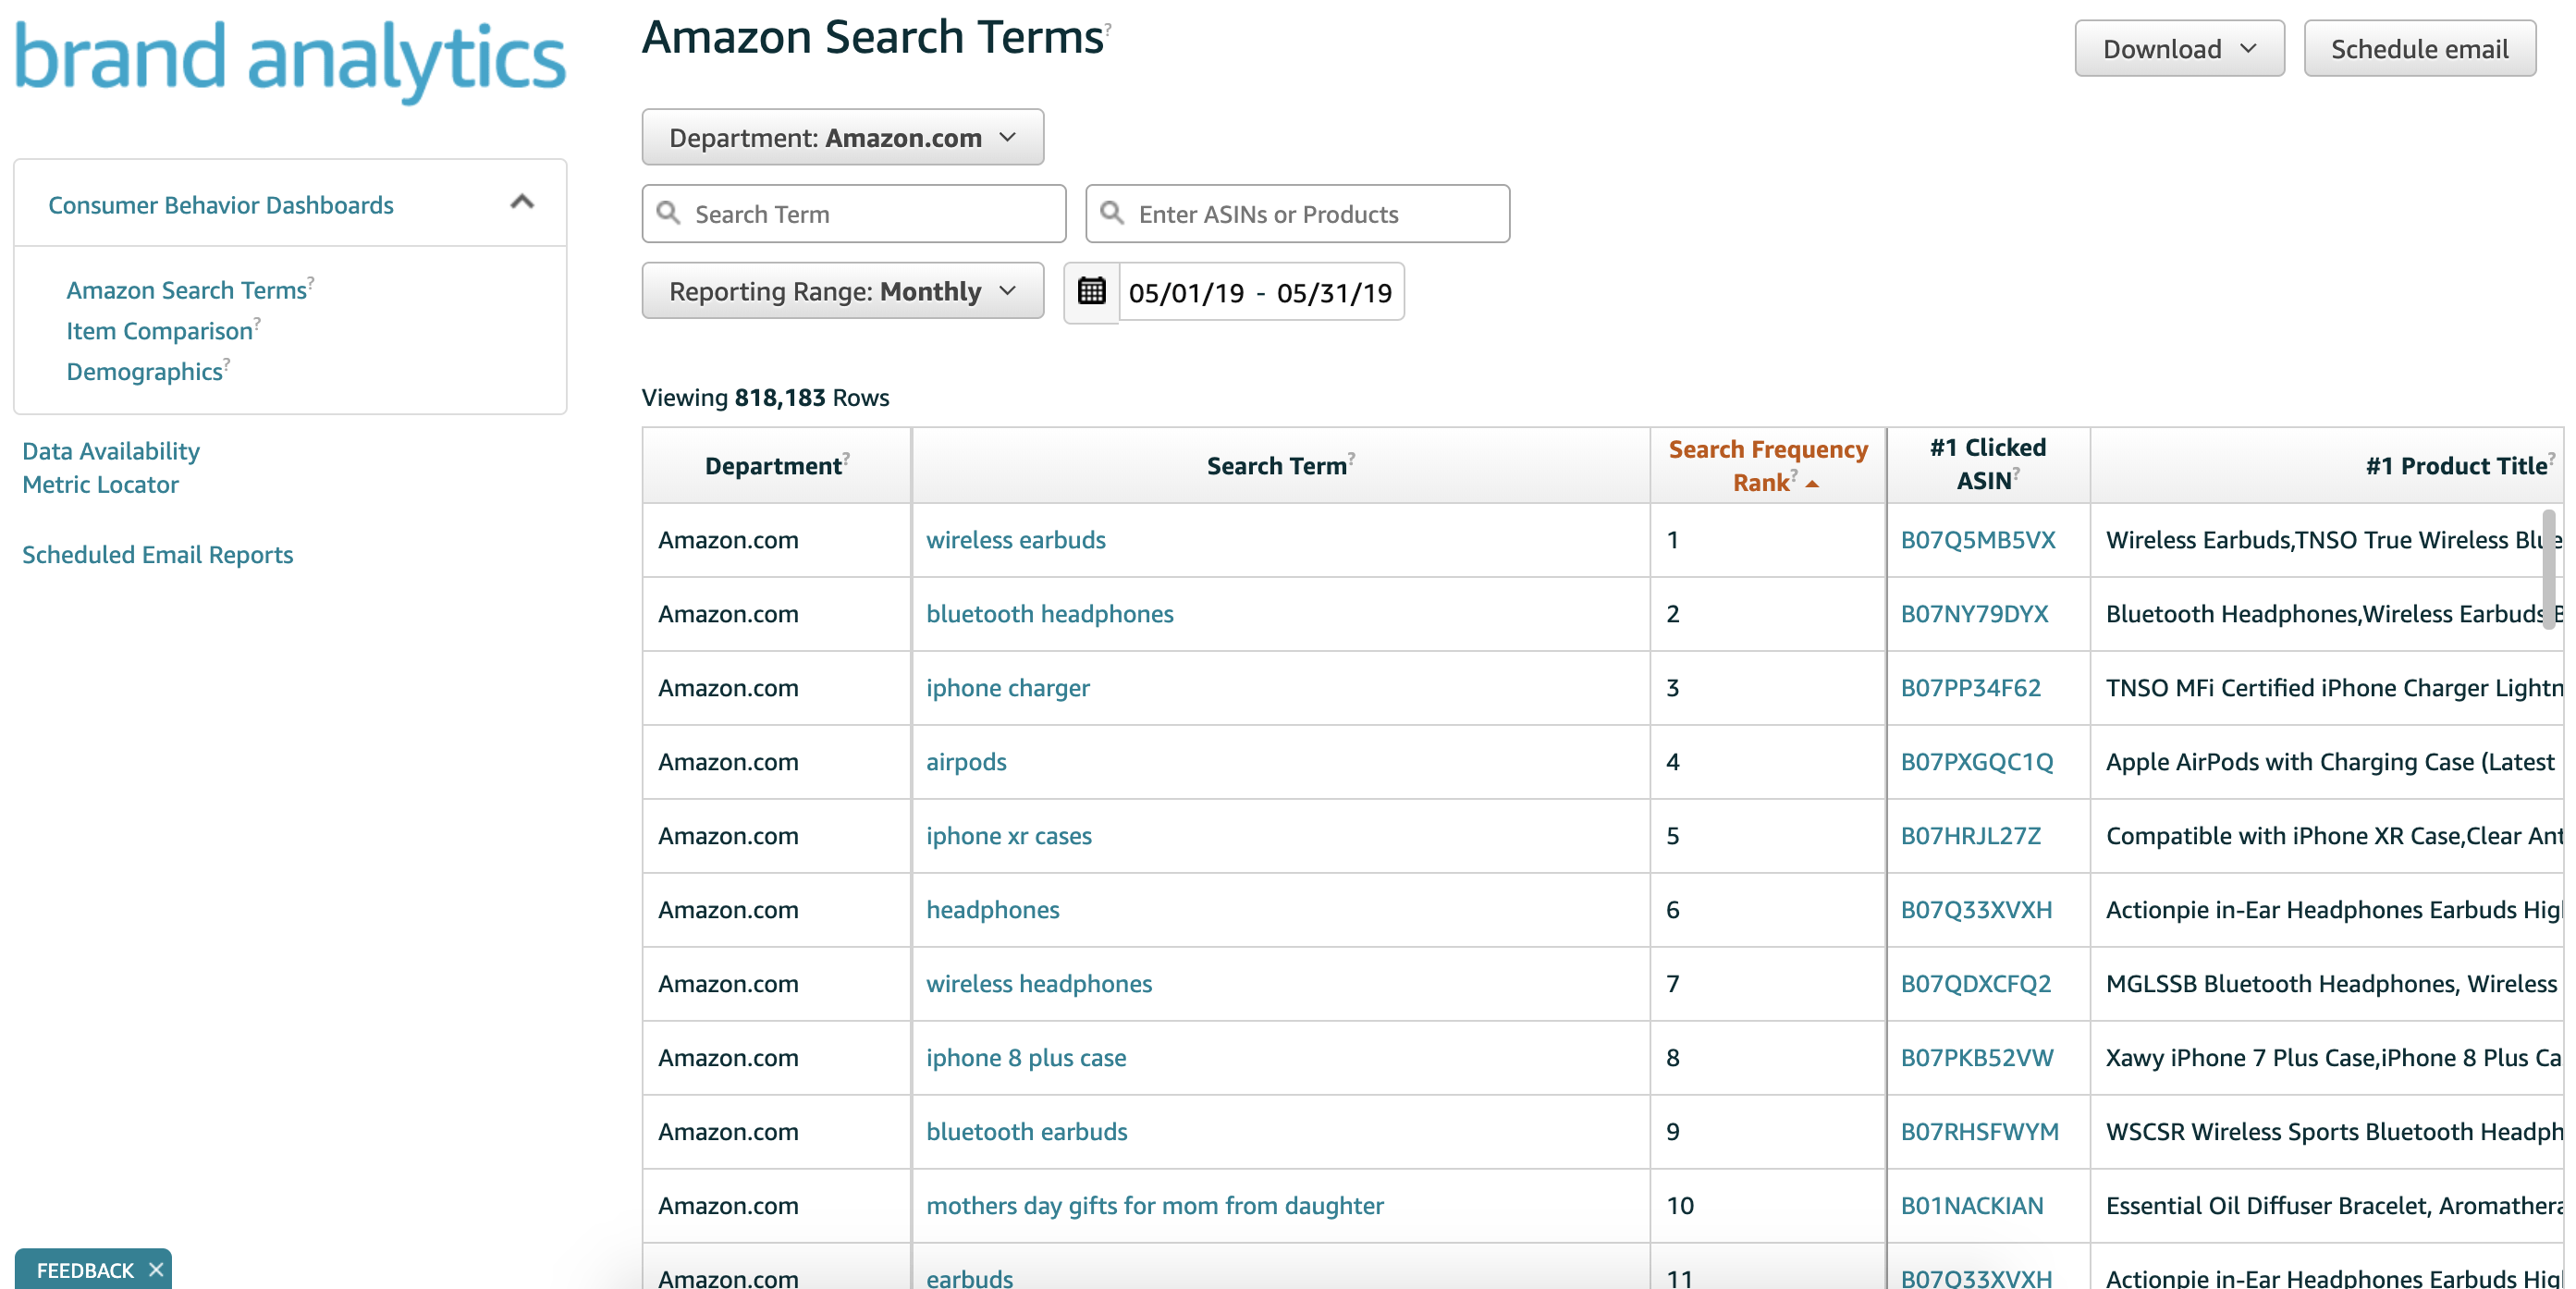 Amazon Search Terms In Amazon's Brand Analytics Dashboard